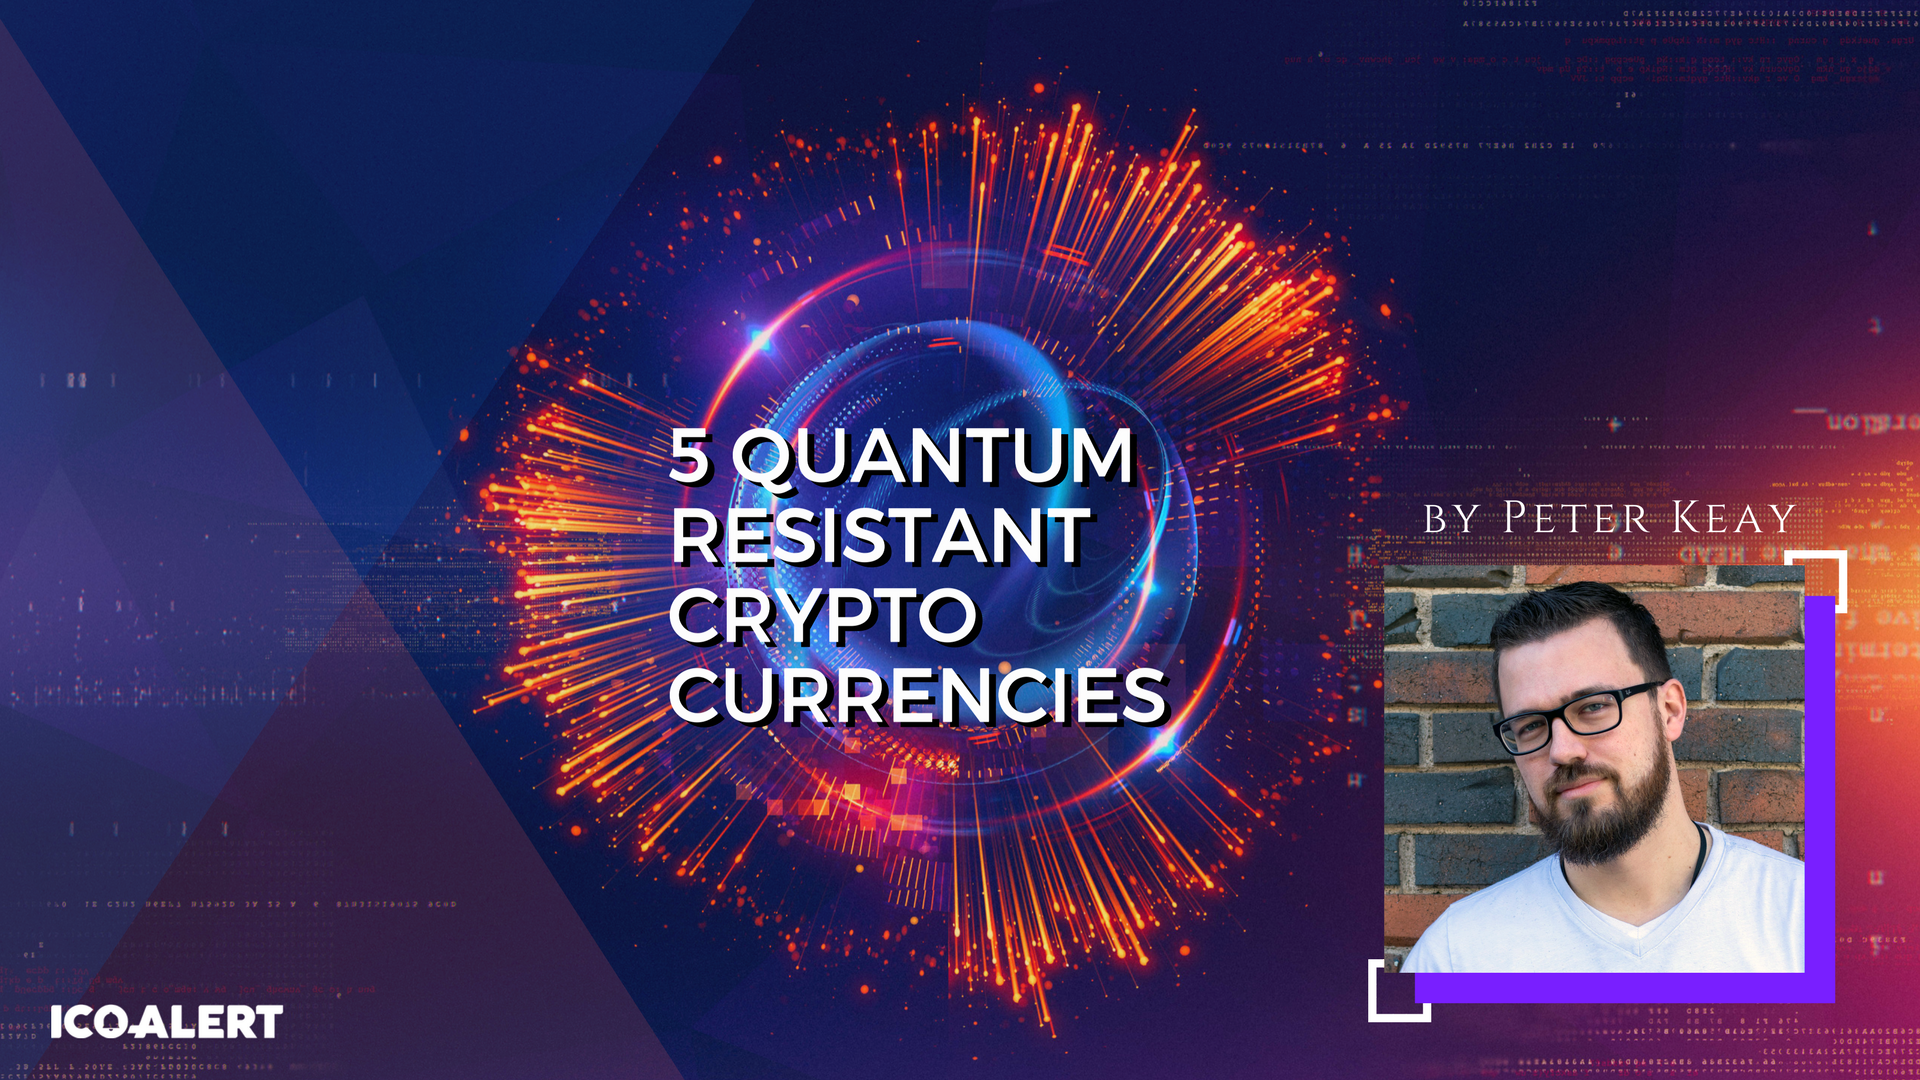 Quantum computing resistant cryptocurrency